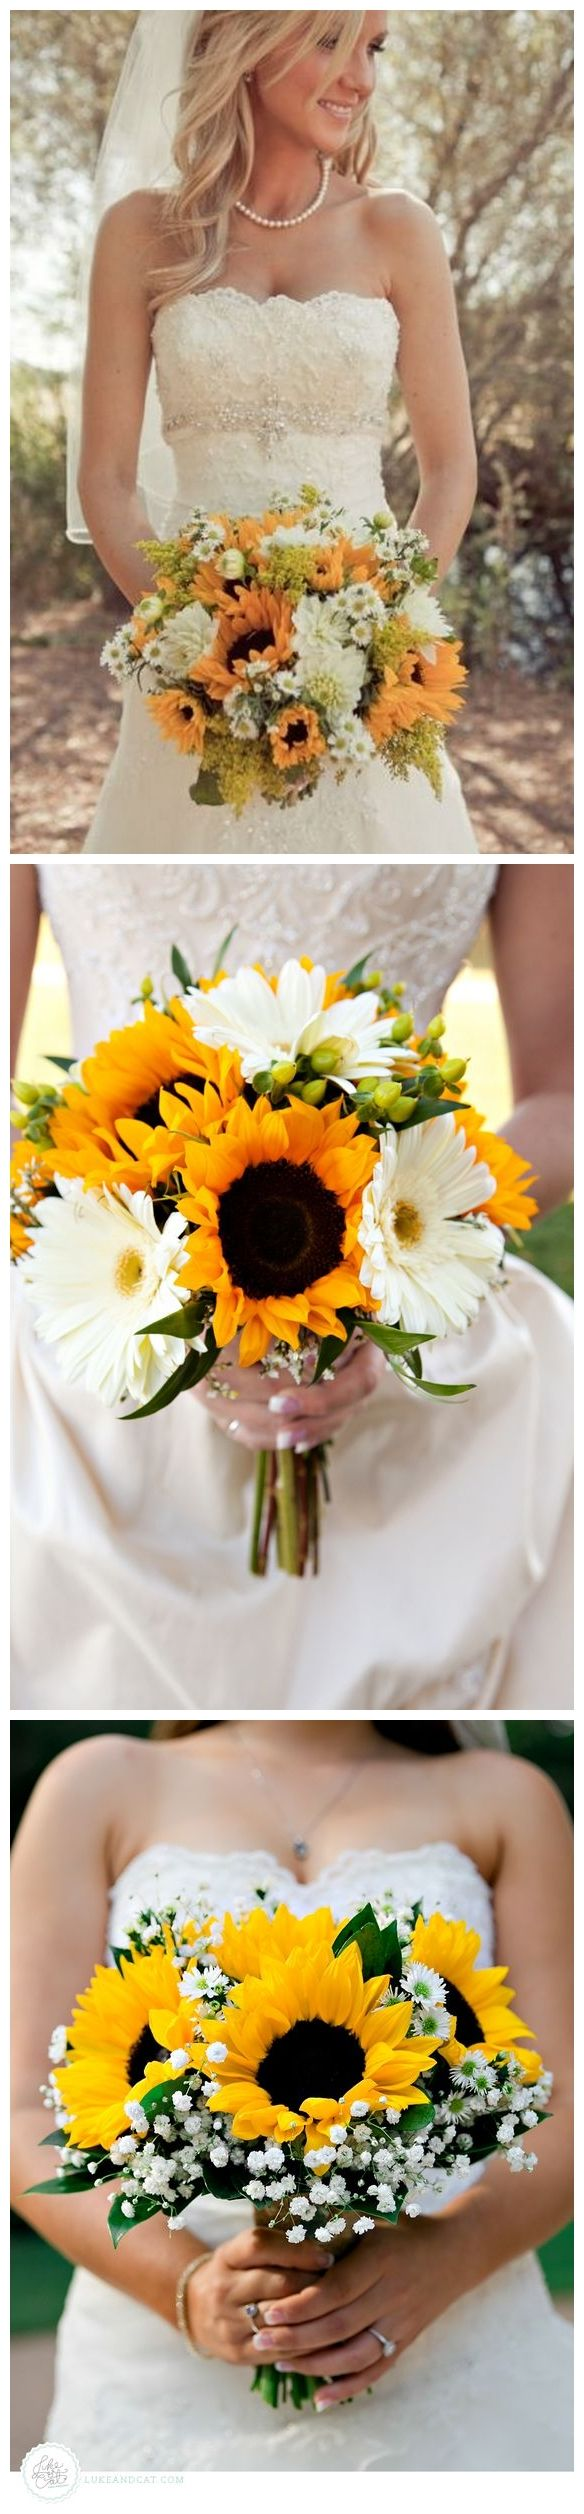 Bold Country Sunflower Wedding ideas /   http://www.himisspuff.com/country-sunflower-wedding-ideas/